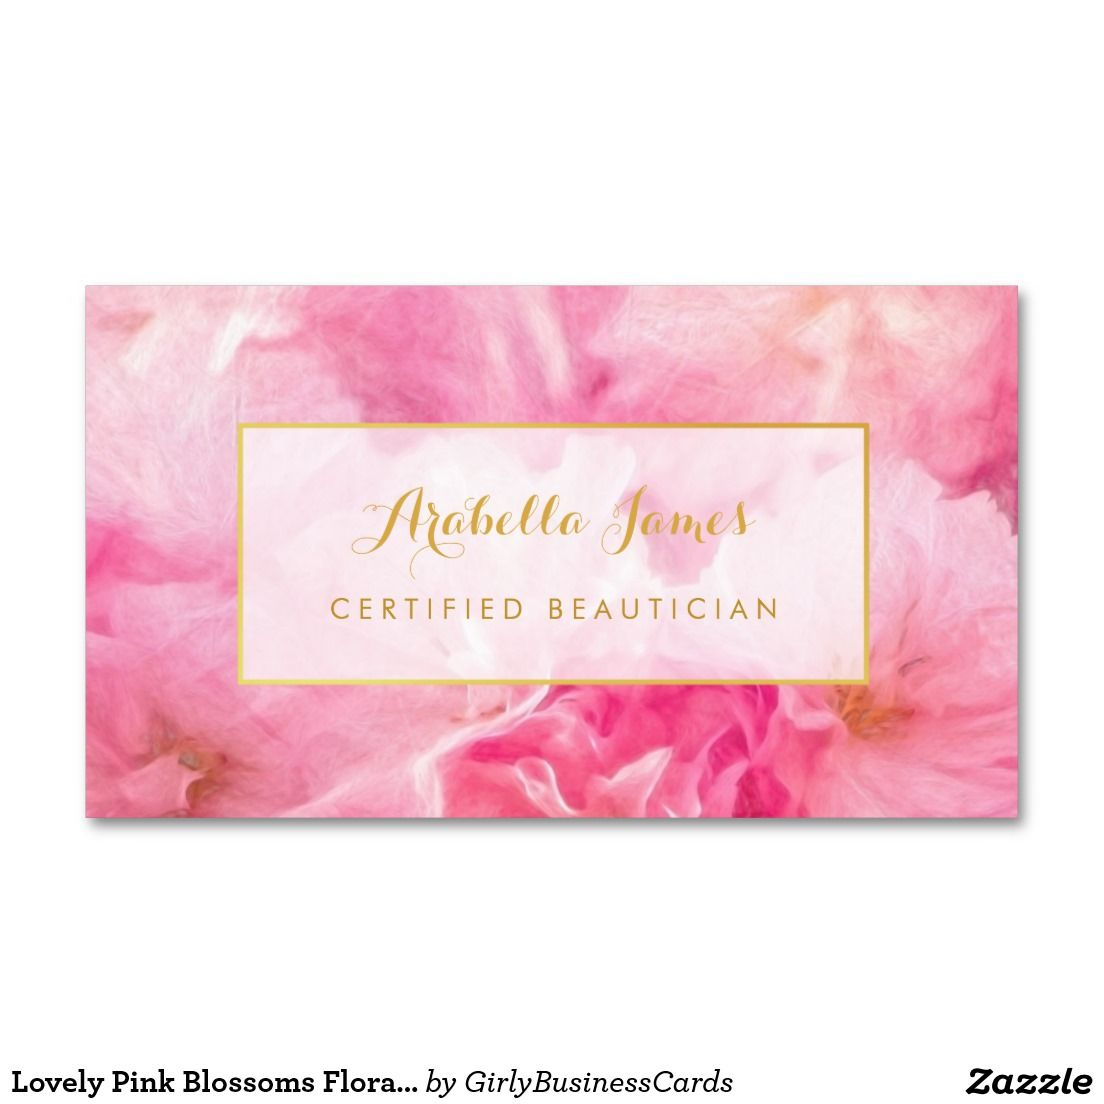 Lovely pink blossoms floral certified beautician business card lovely pink blossoms floral certified beautician business cards colourmoves